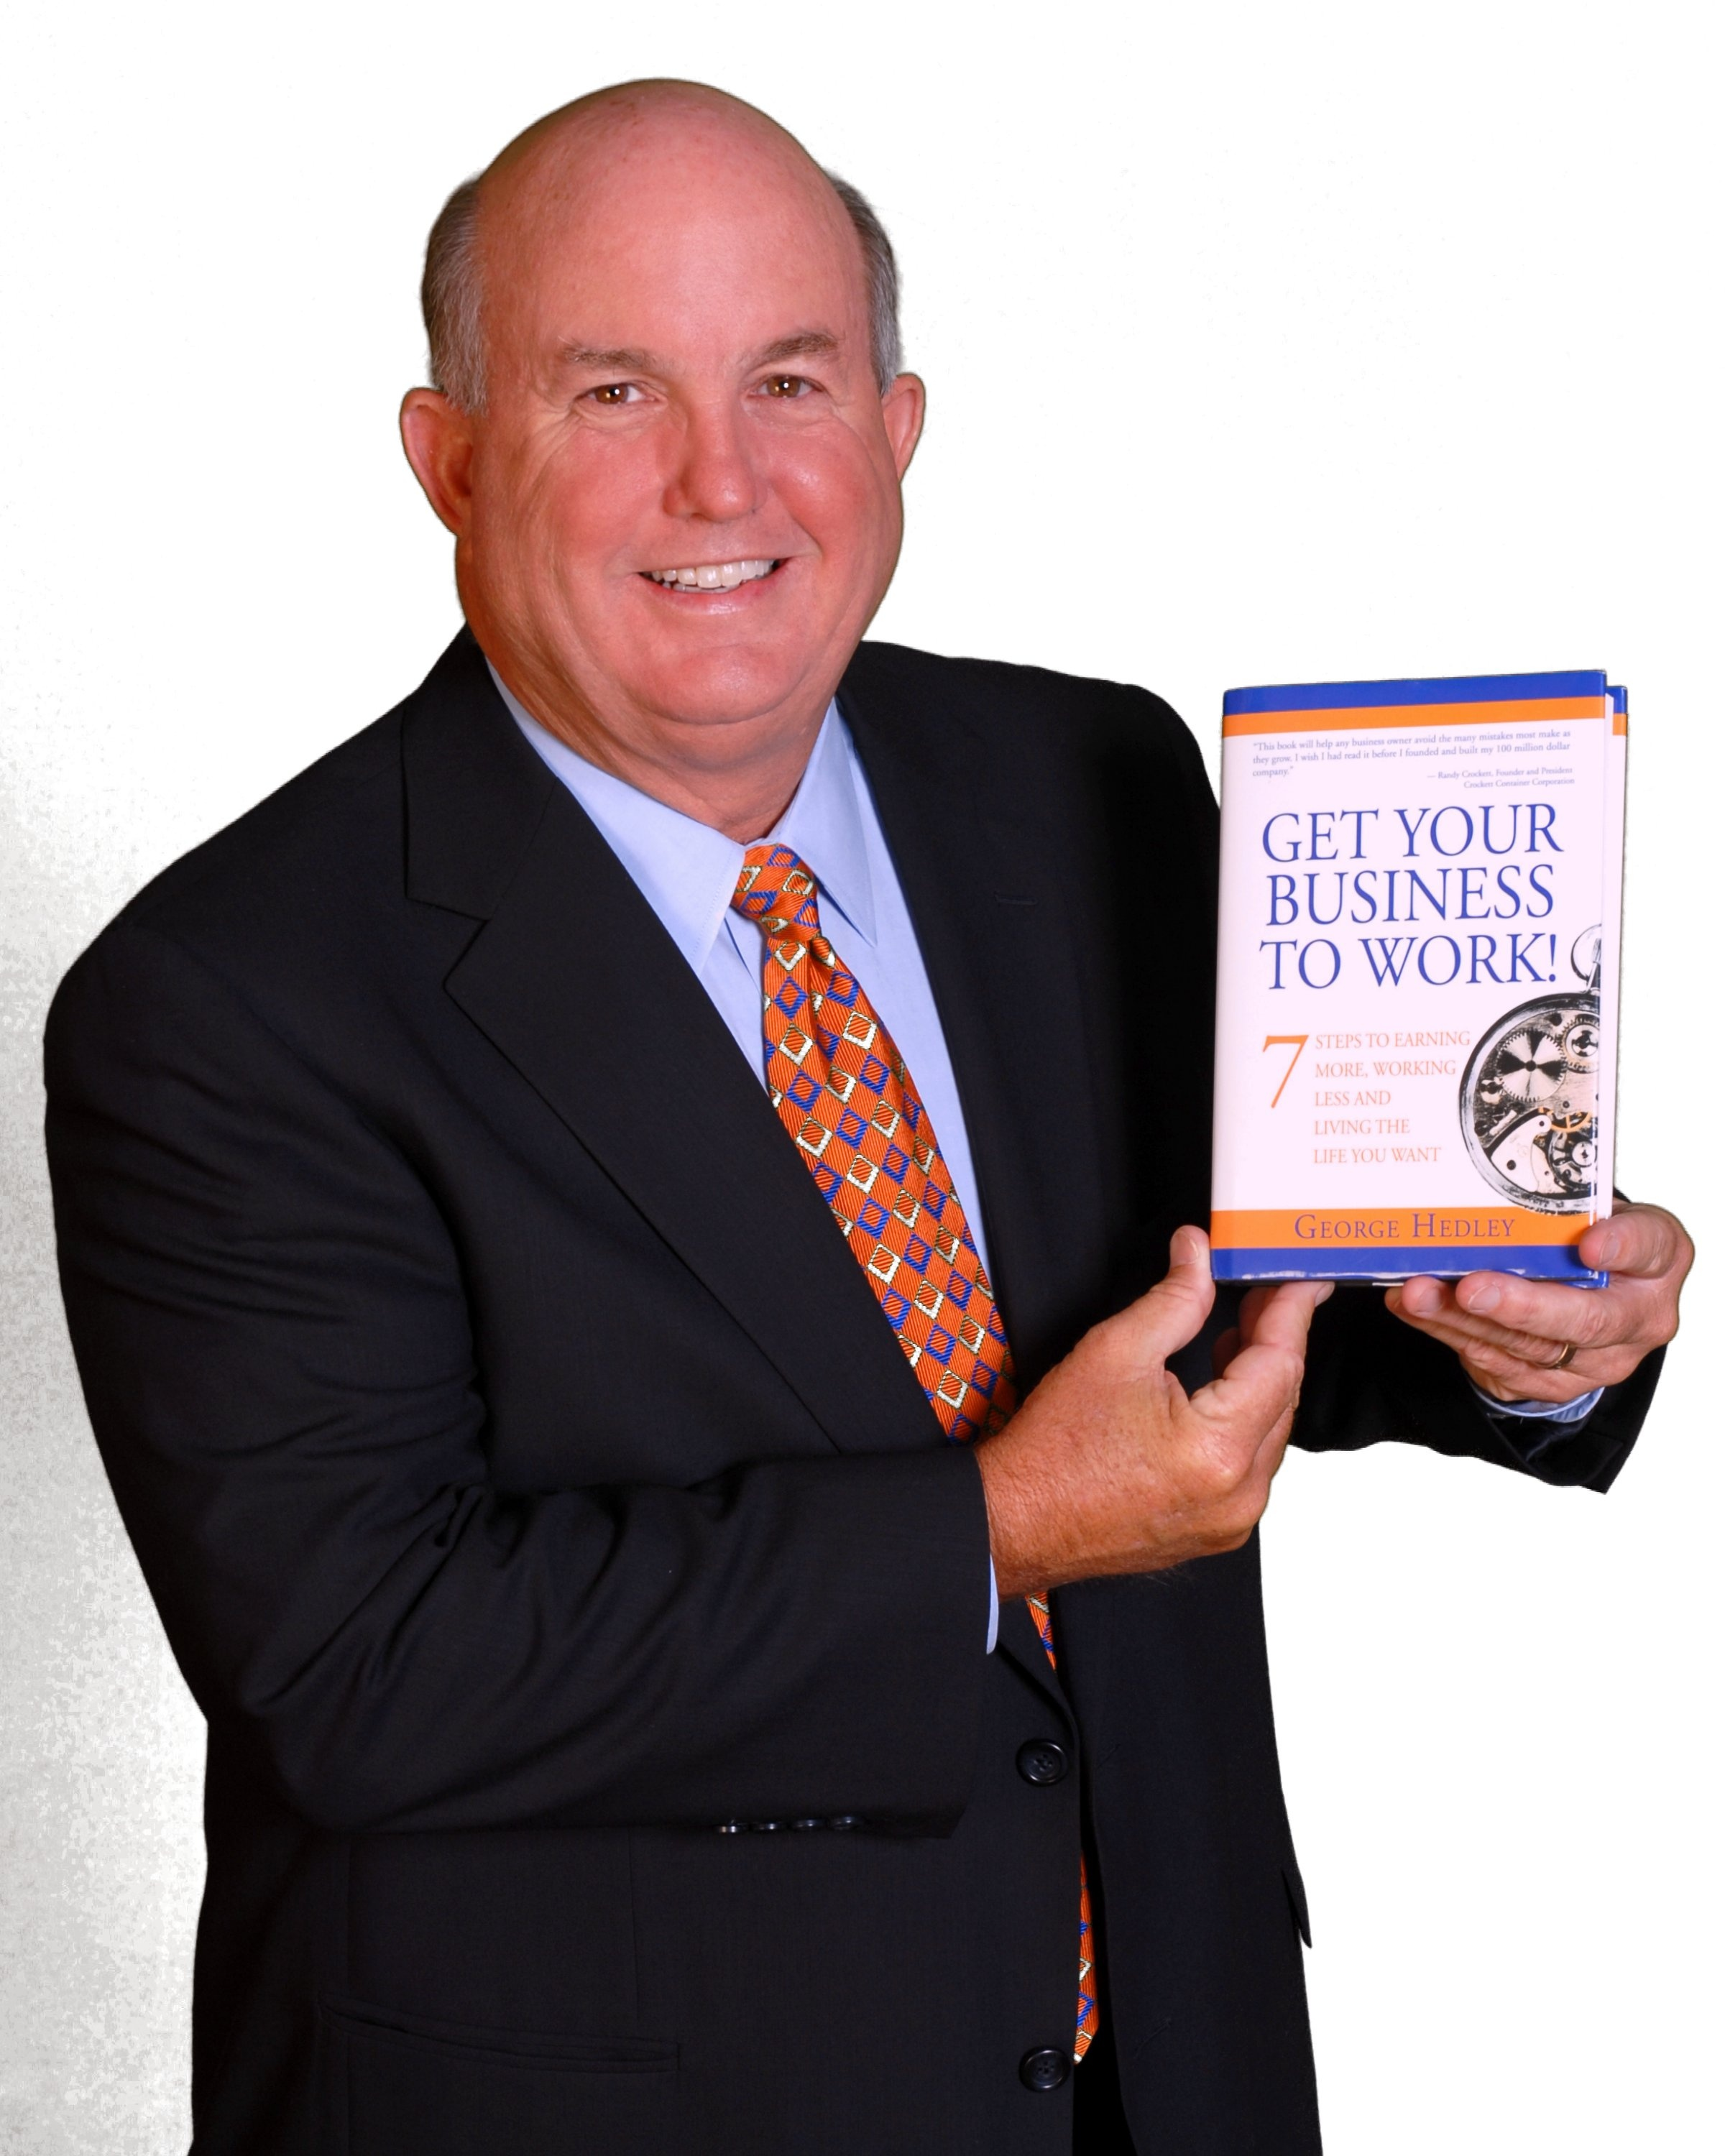 George Hedley Photo with his bestselling Book